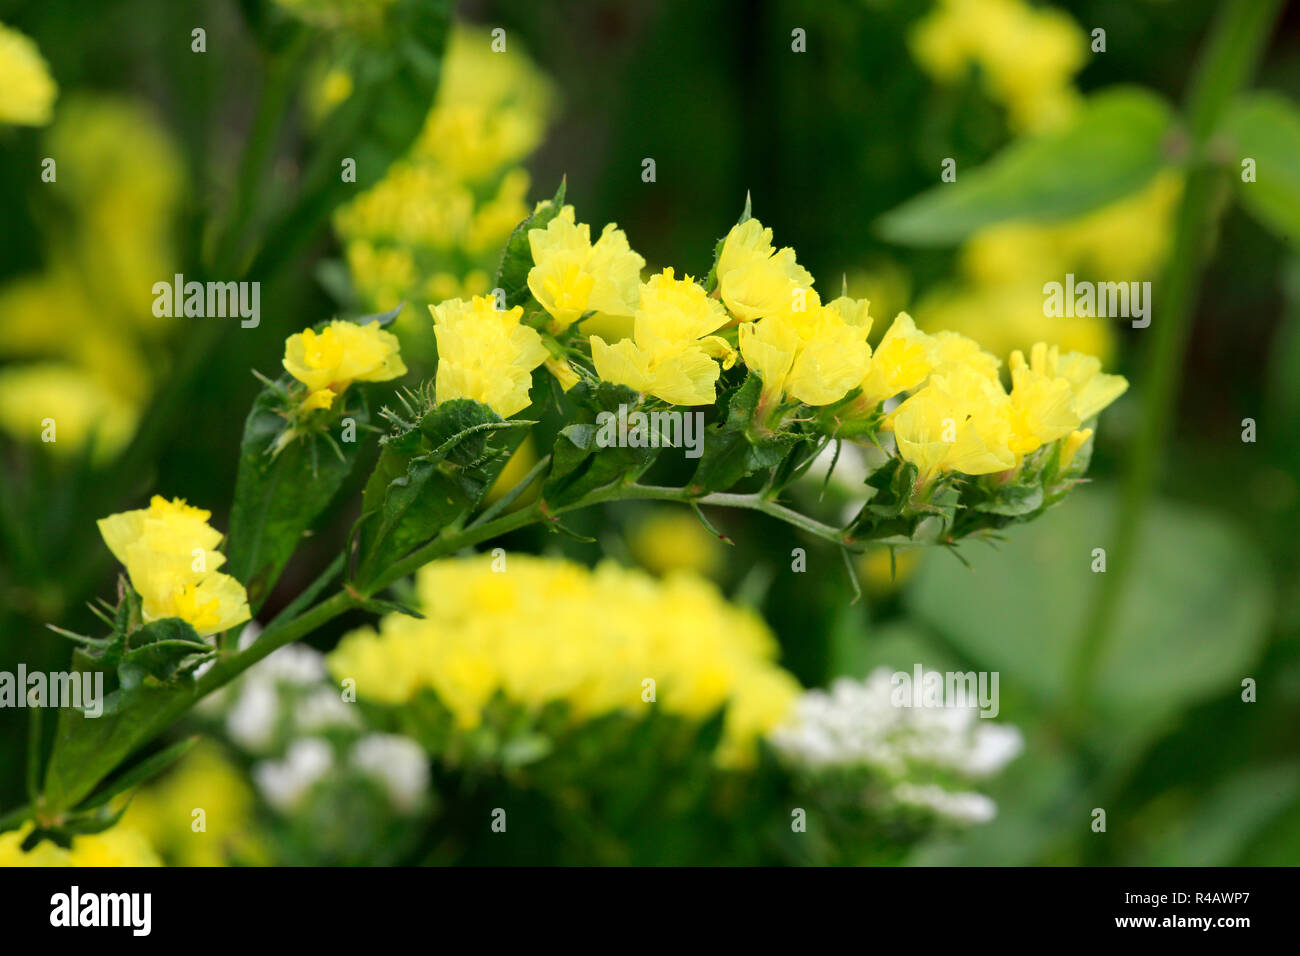 Limonium, Germany, Europe, (Limonium) - Stock Image